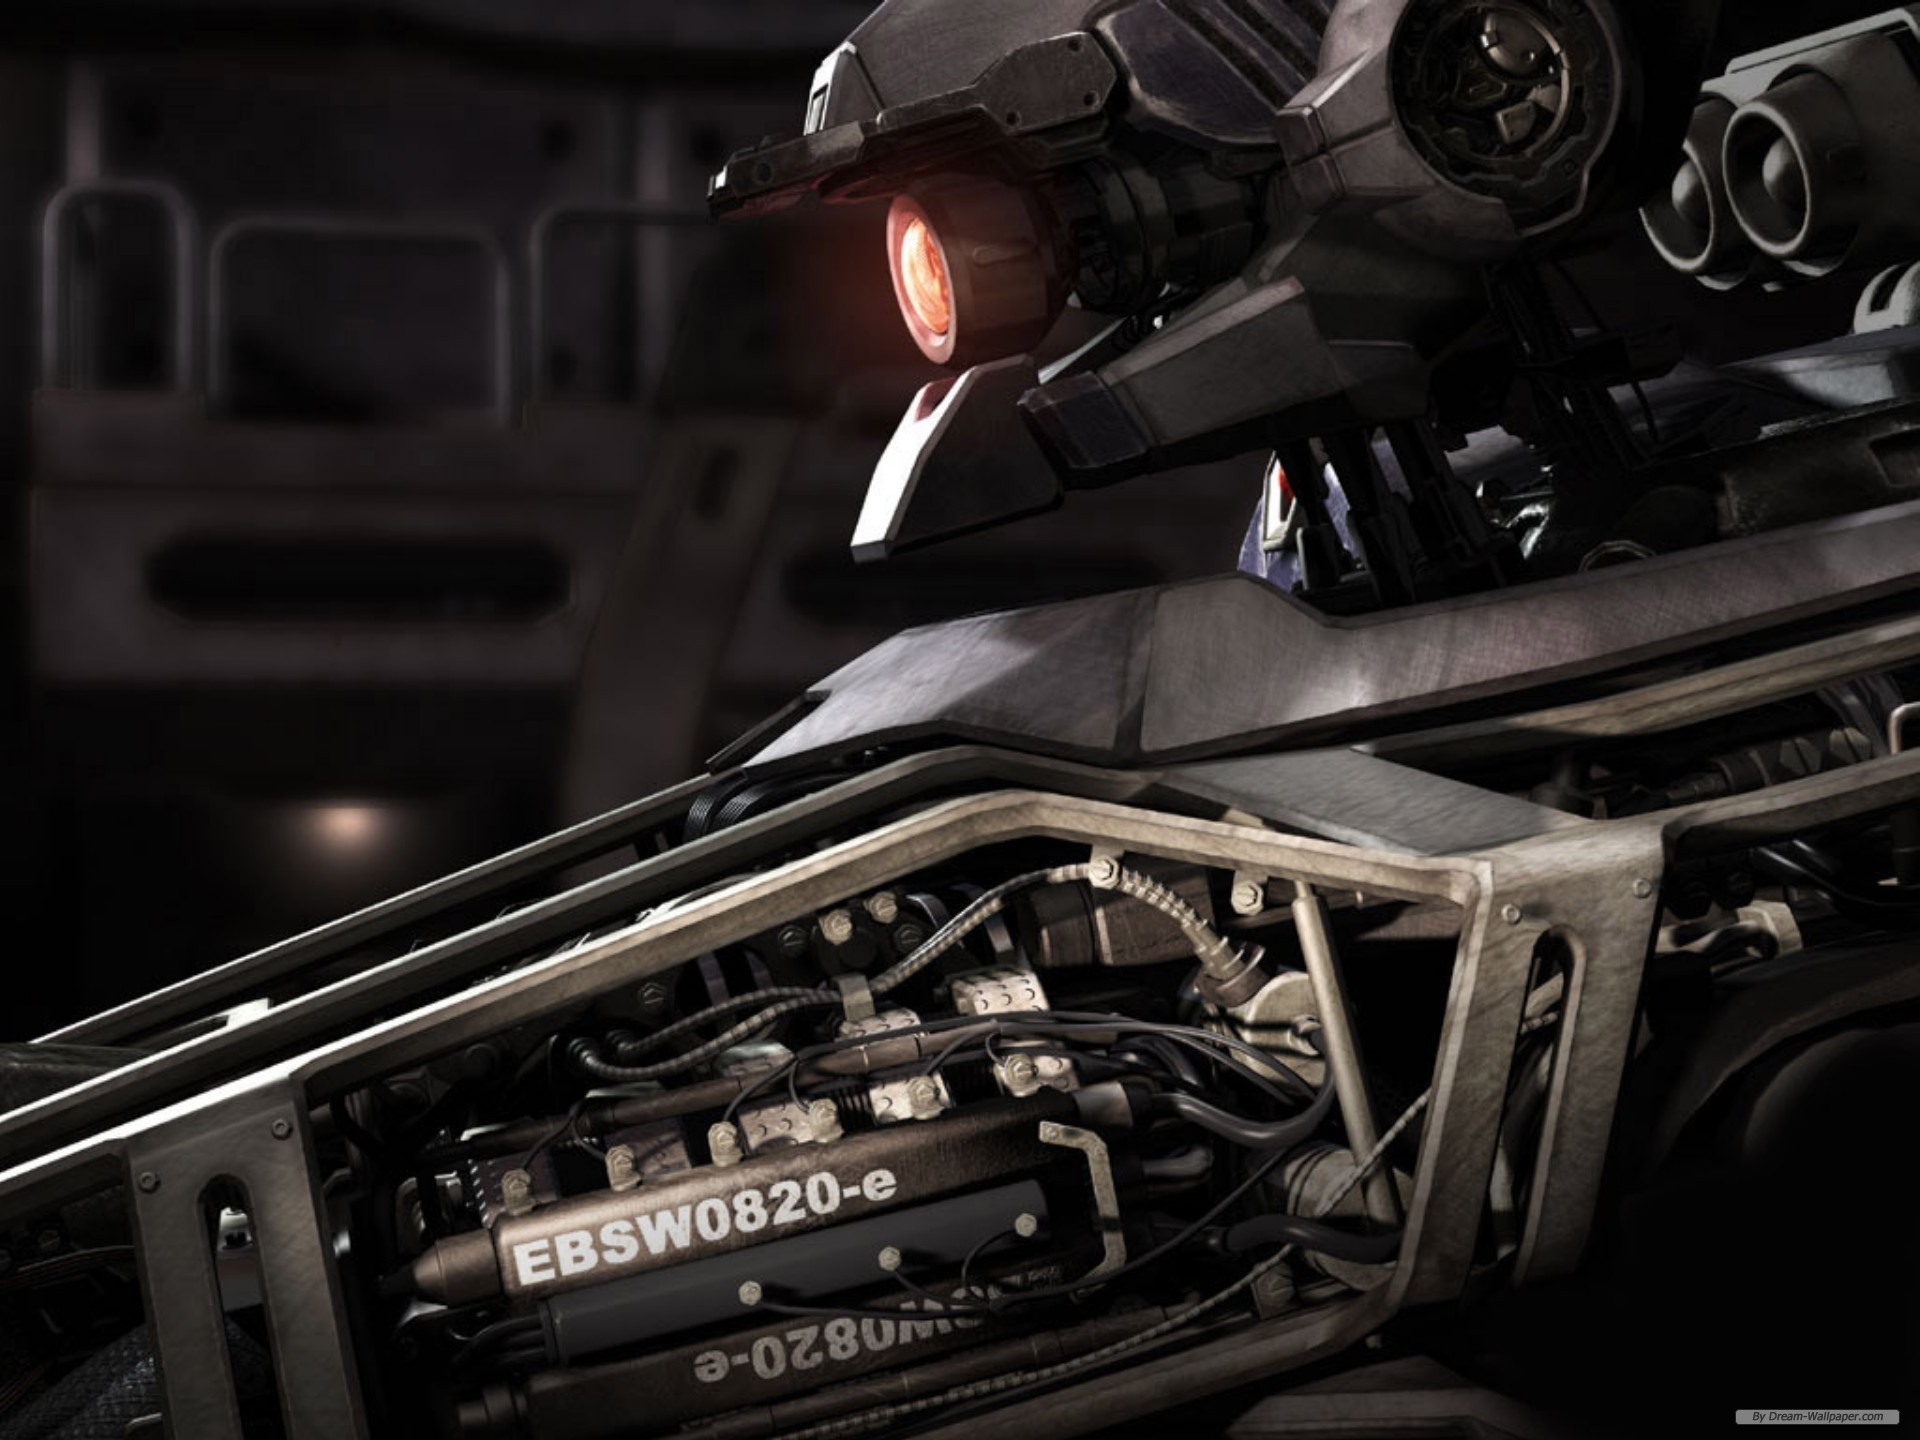 Free Game wallpaper – Armored Core wallpaper – wallpaper – Index  4.